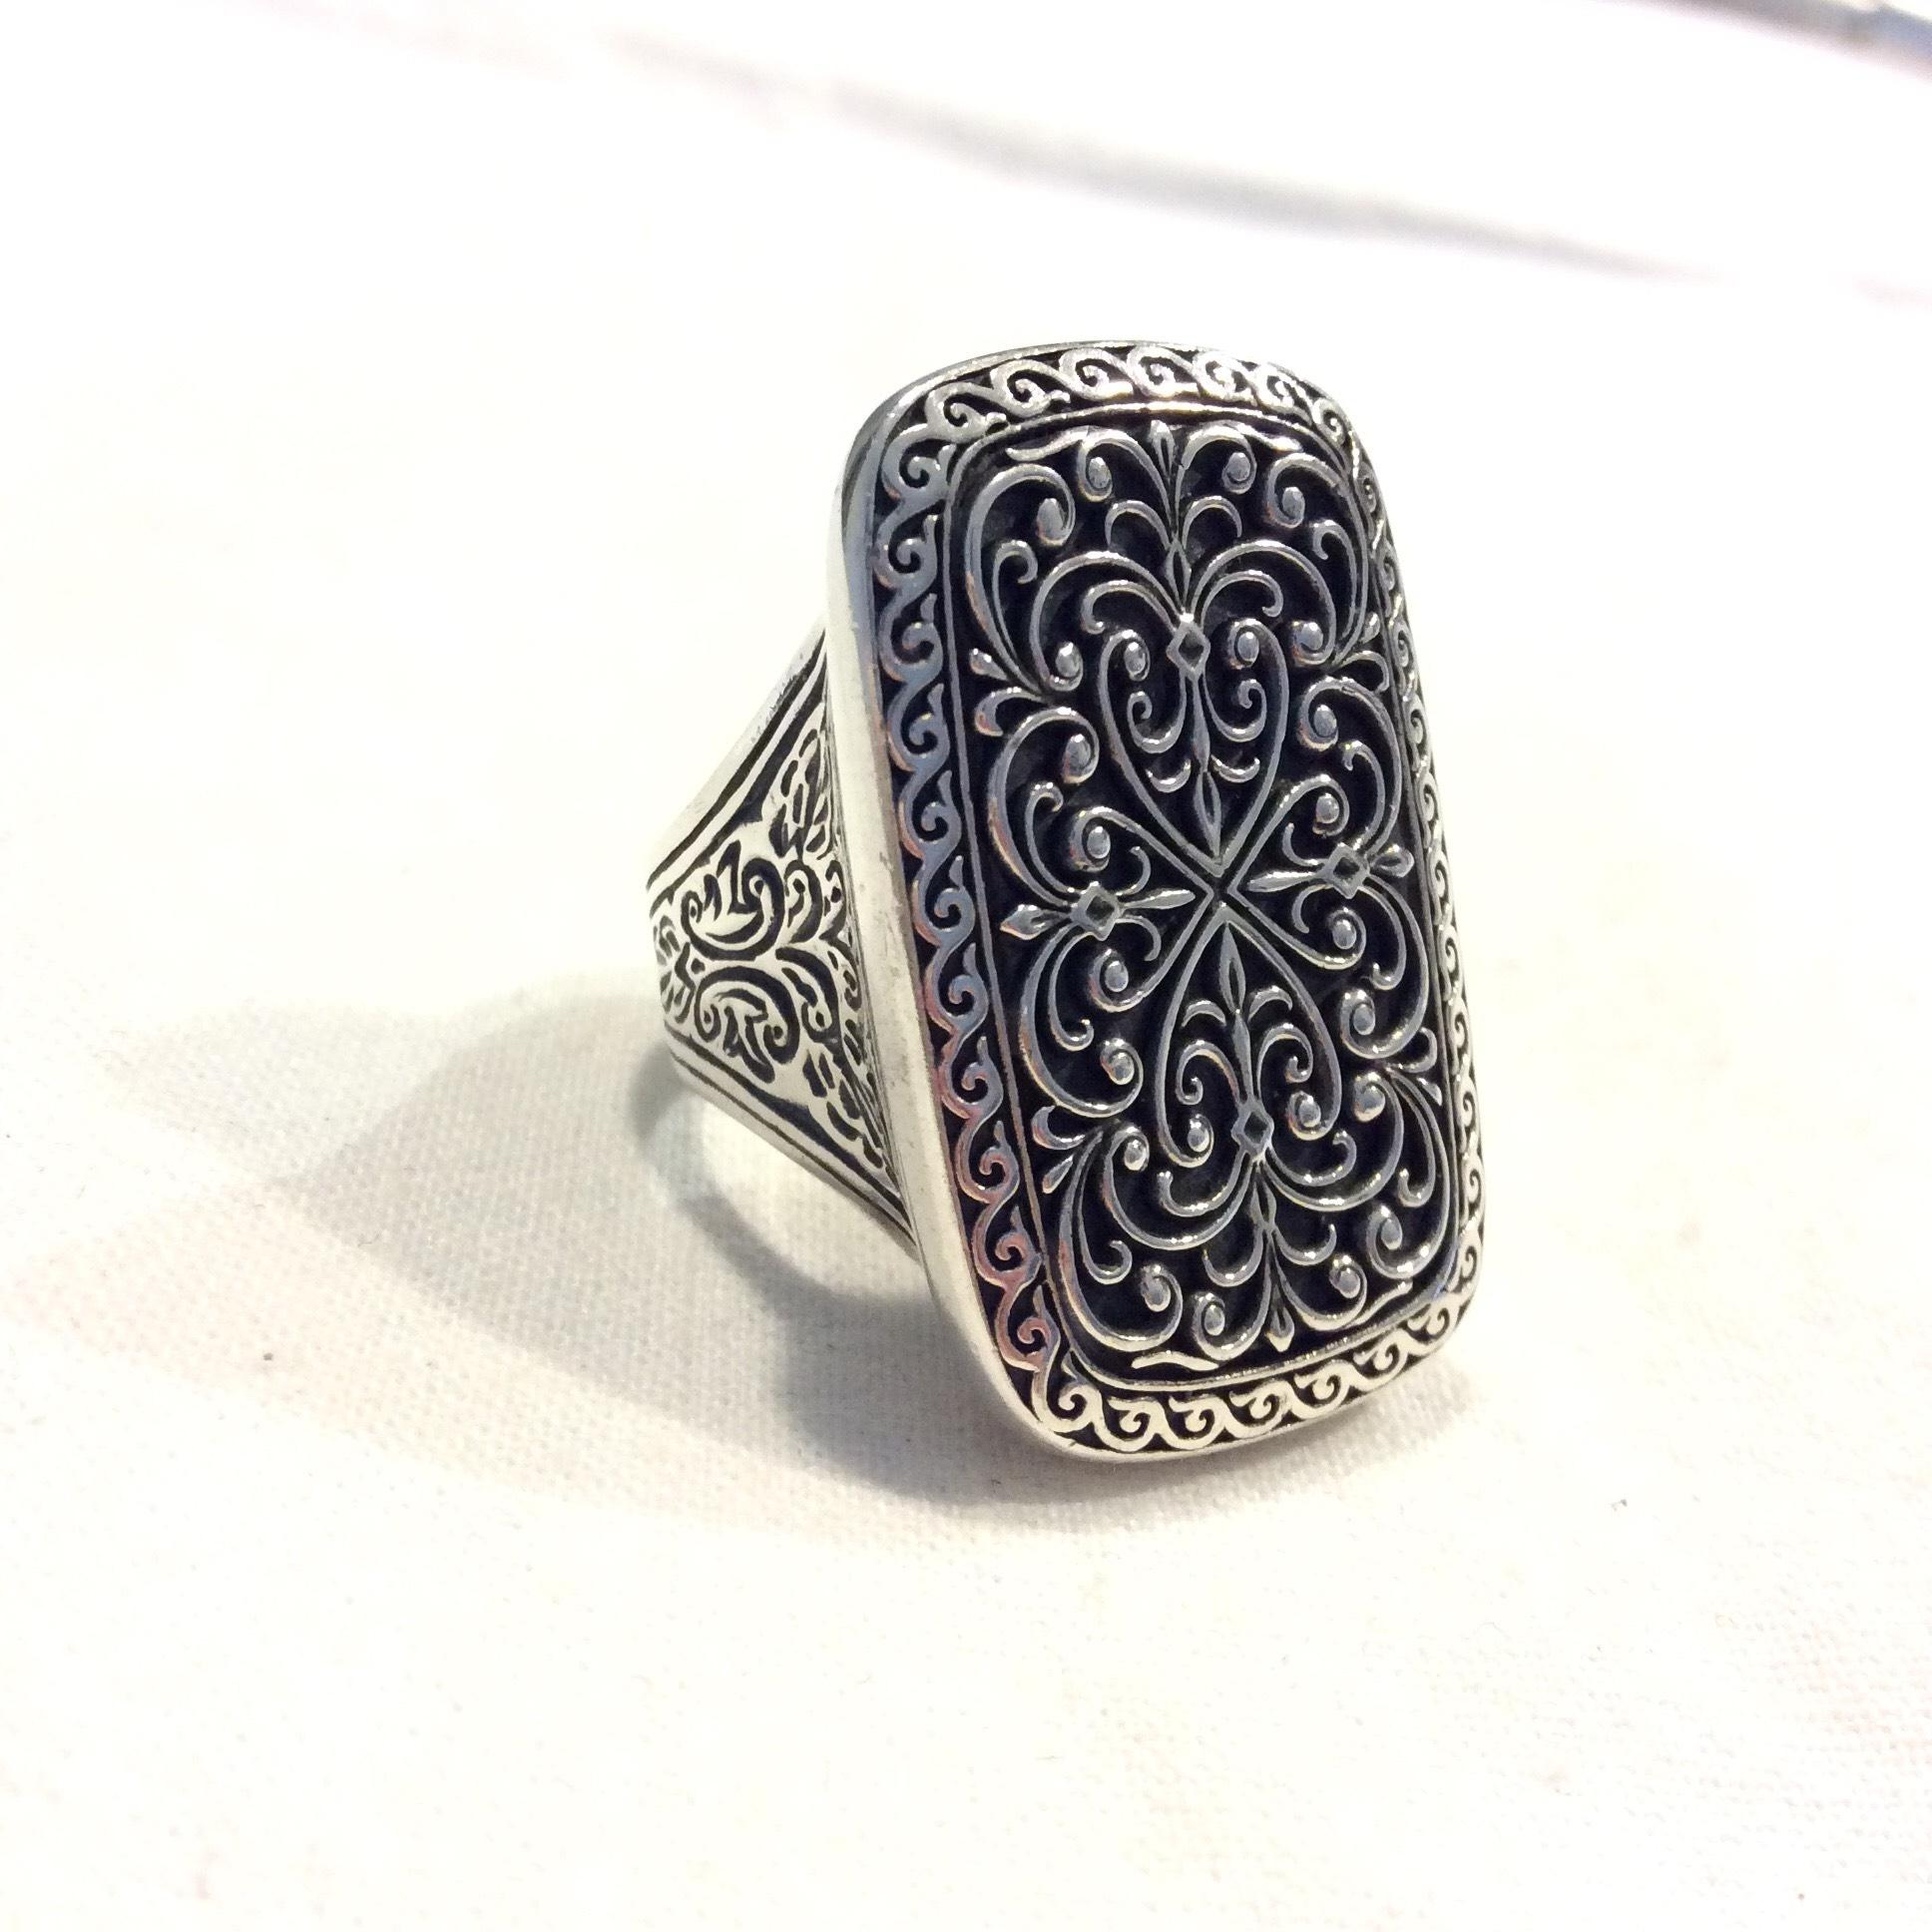 Konstantino Large Silver Rectangle Filigree Ring Hnrxc